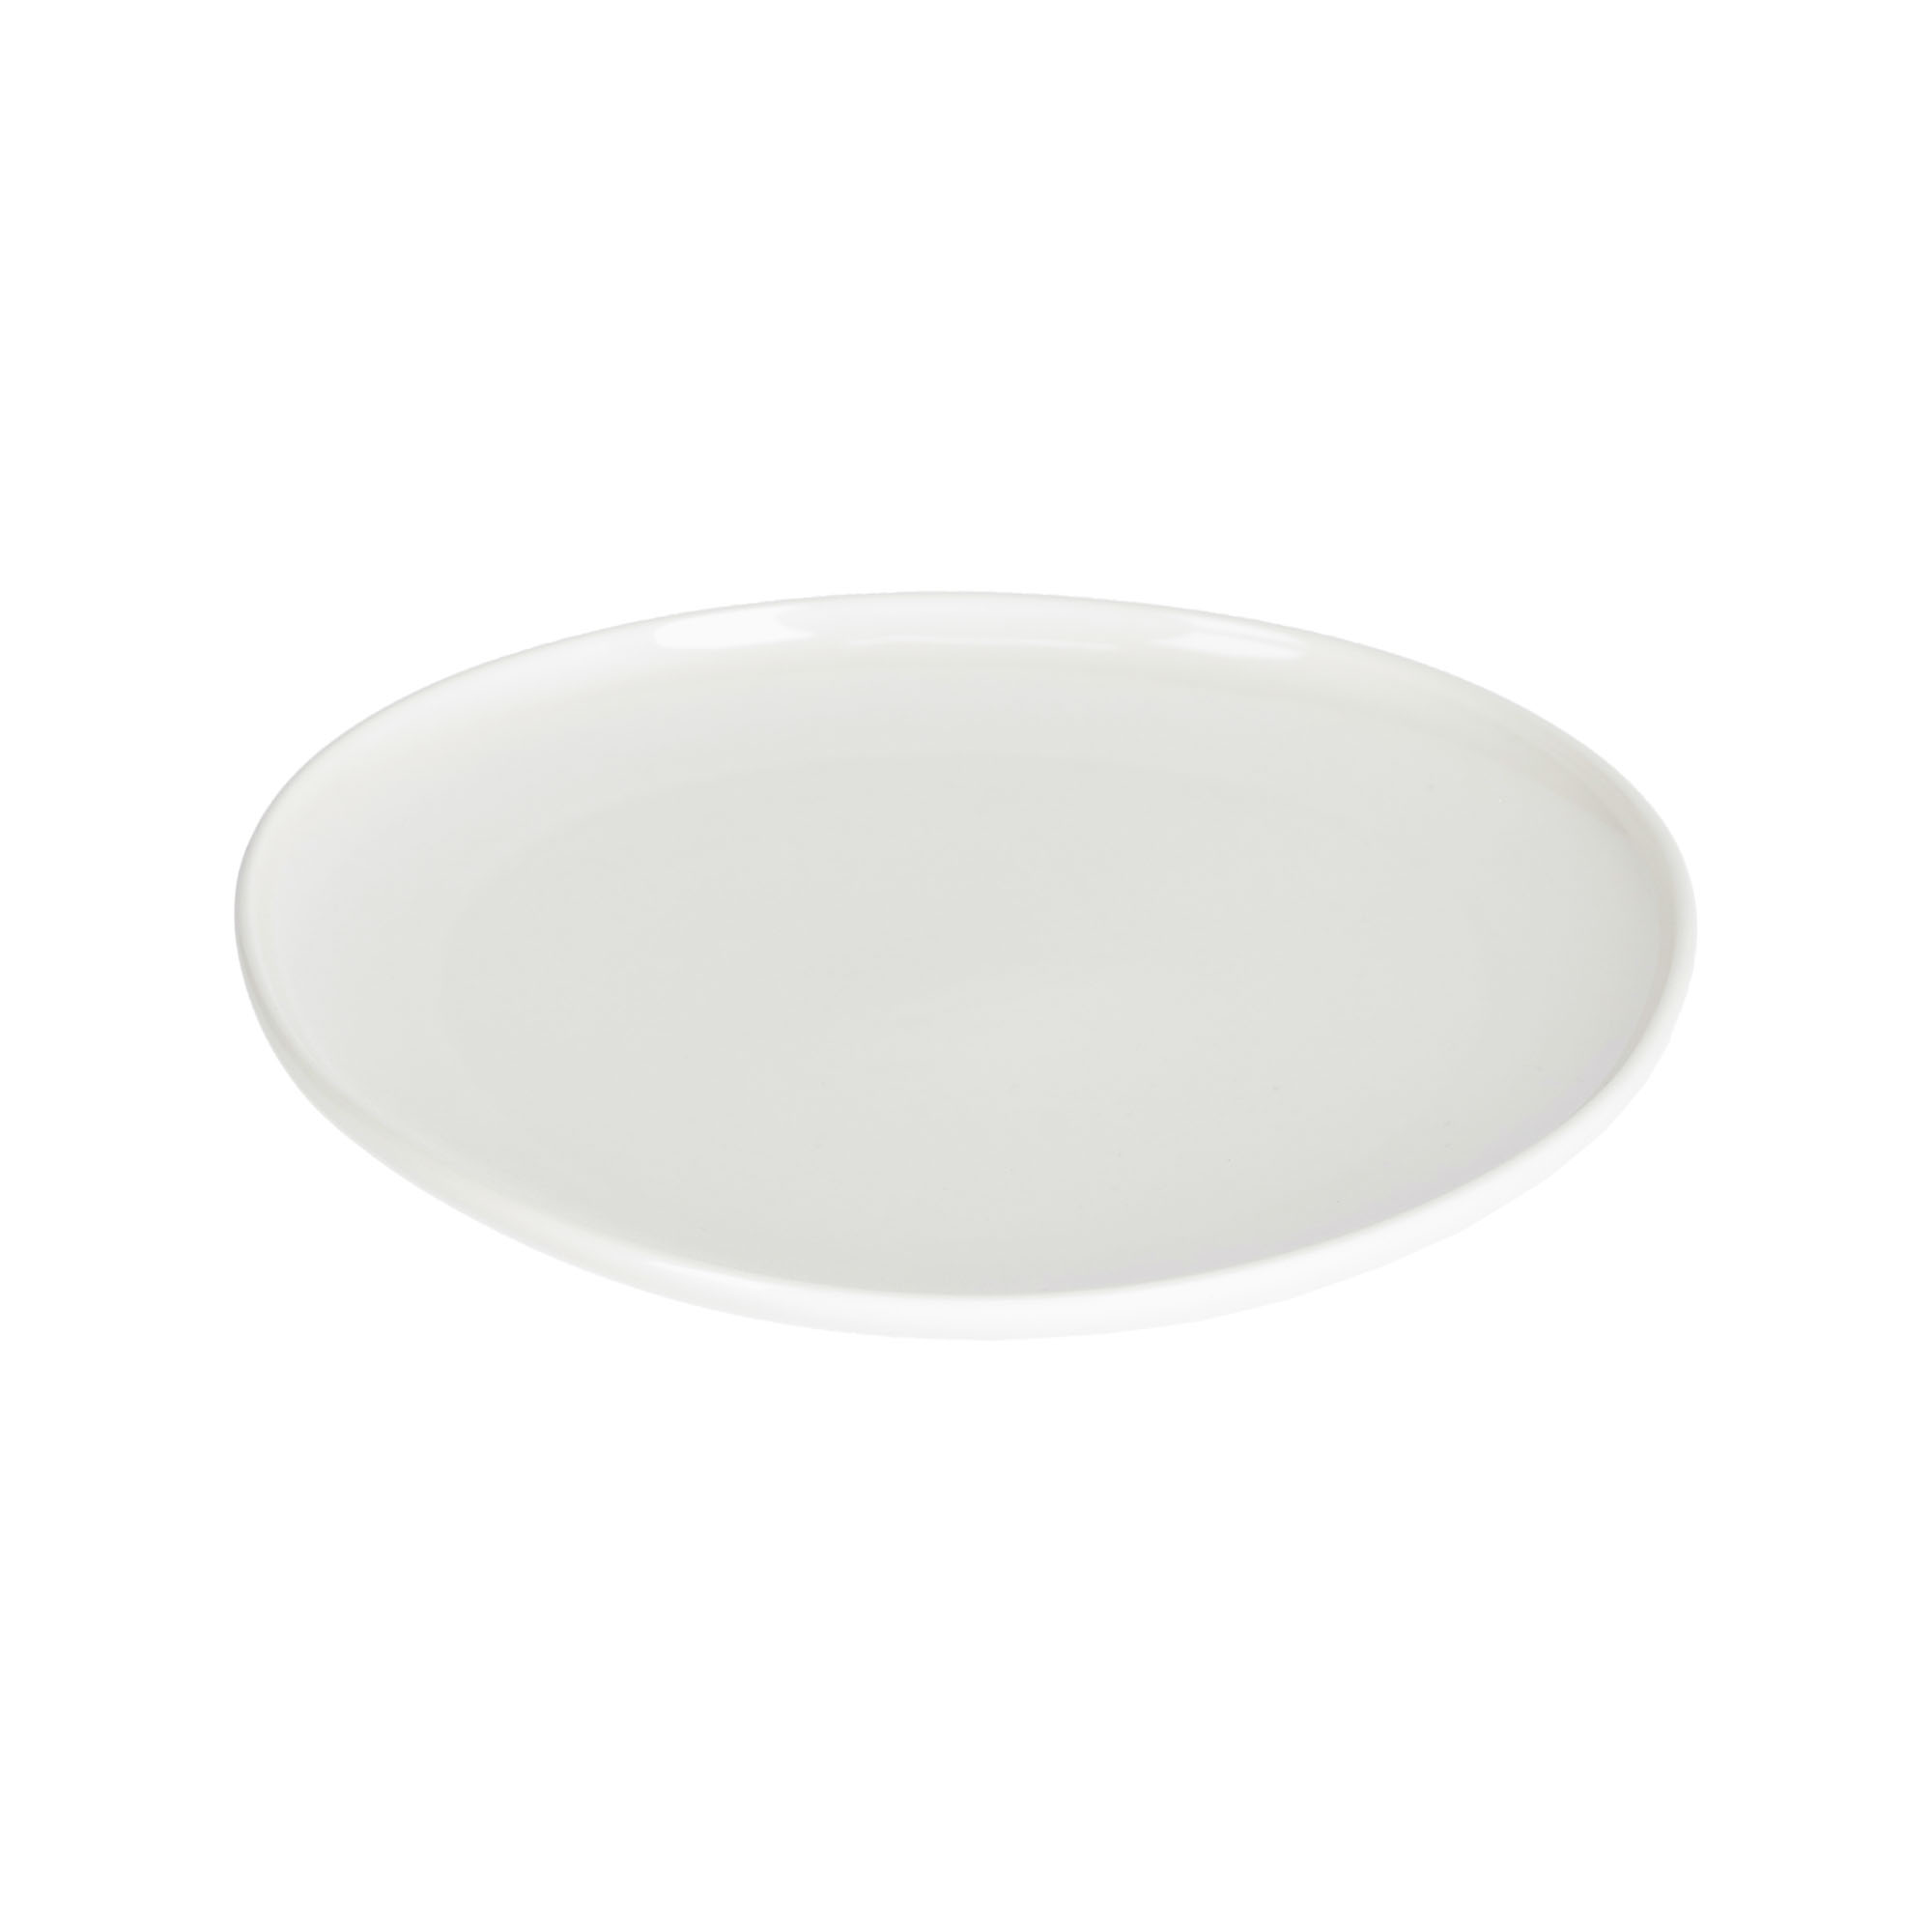 Kave home - assiette plate pahi ronde...